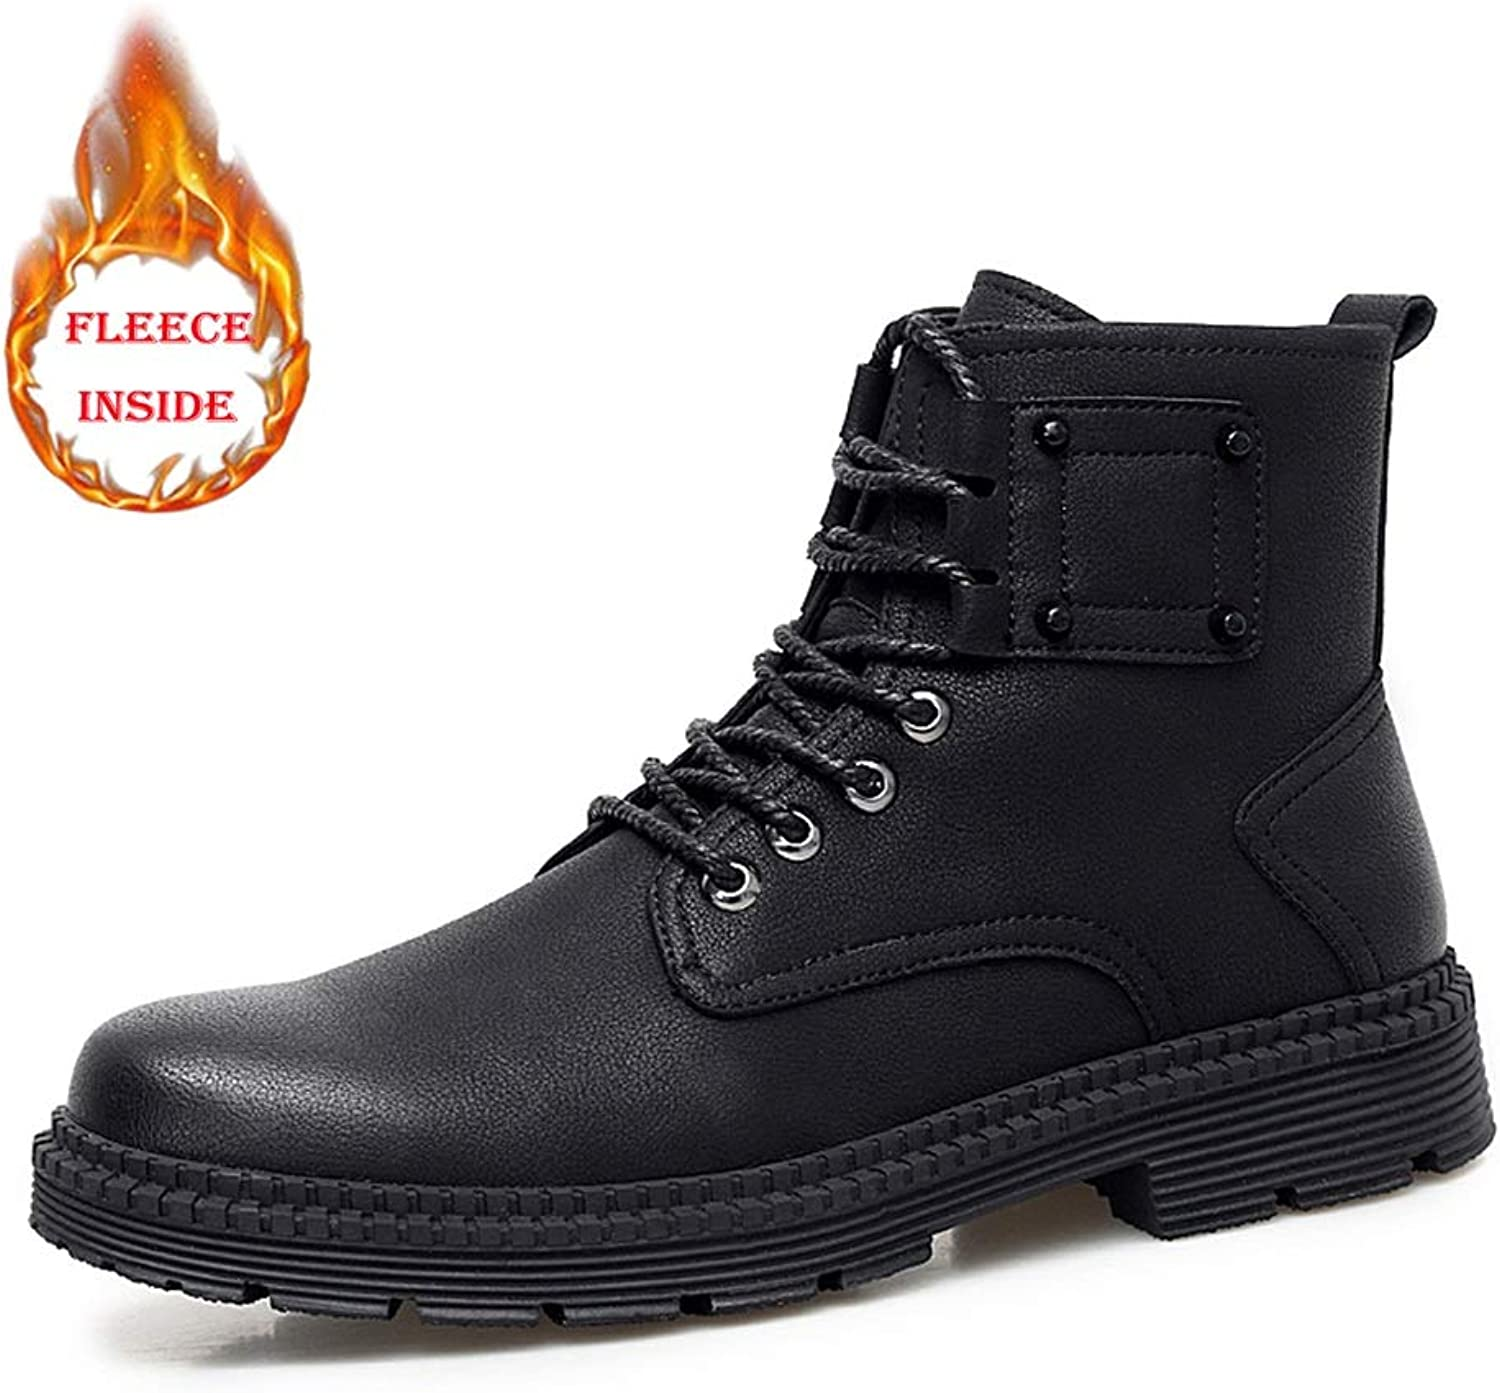 Men's Boots Casual and Comfort British Style Winter Faux Fleece Inside Warm High Top Boot